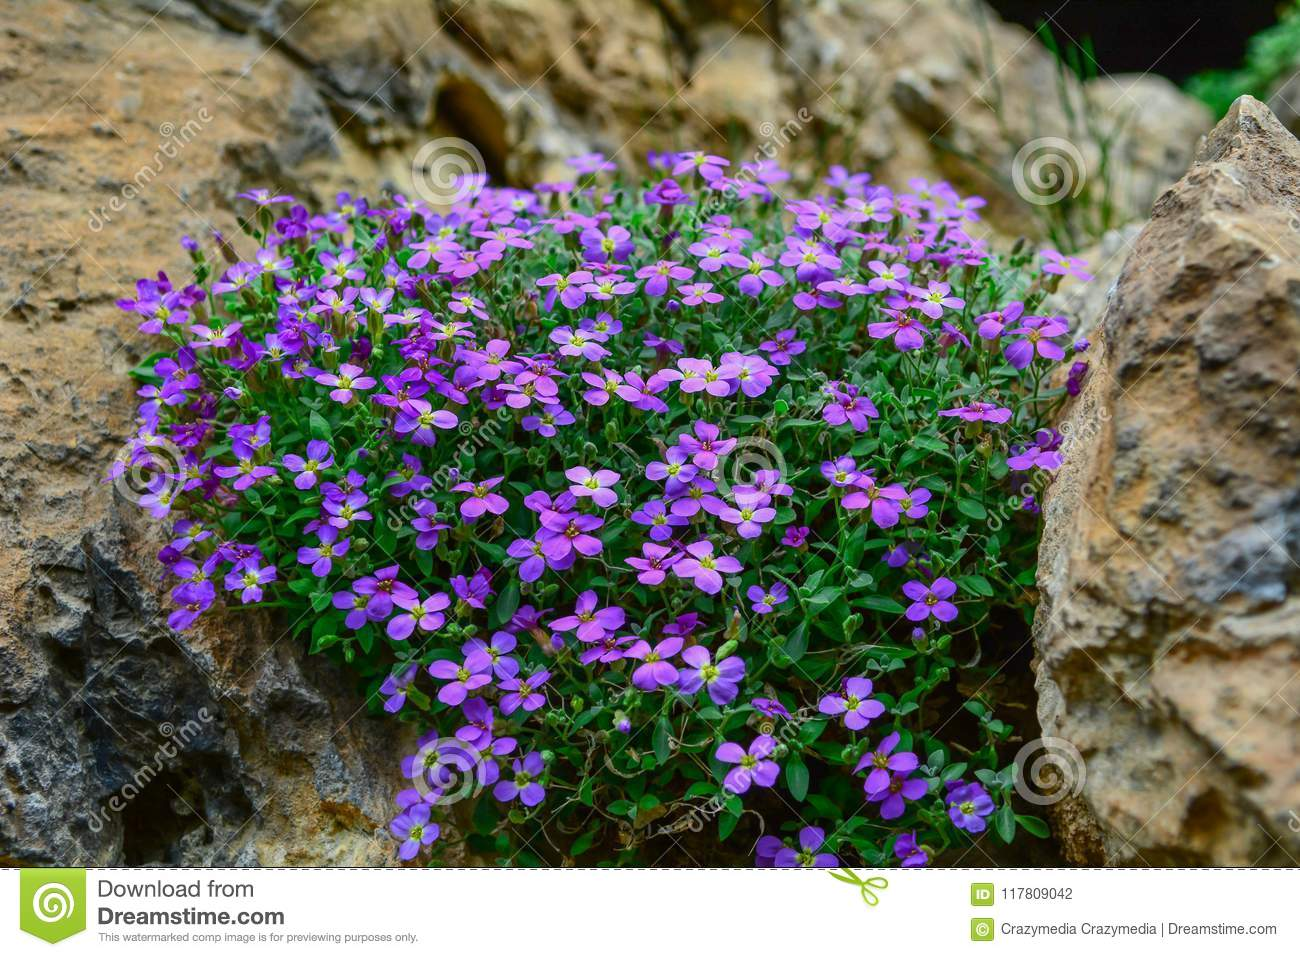 Different Types Of Flowers Growing Among Rocks Stock Photo